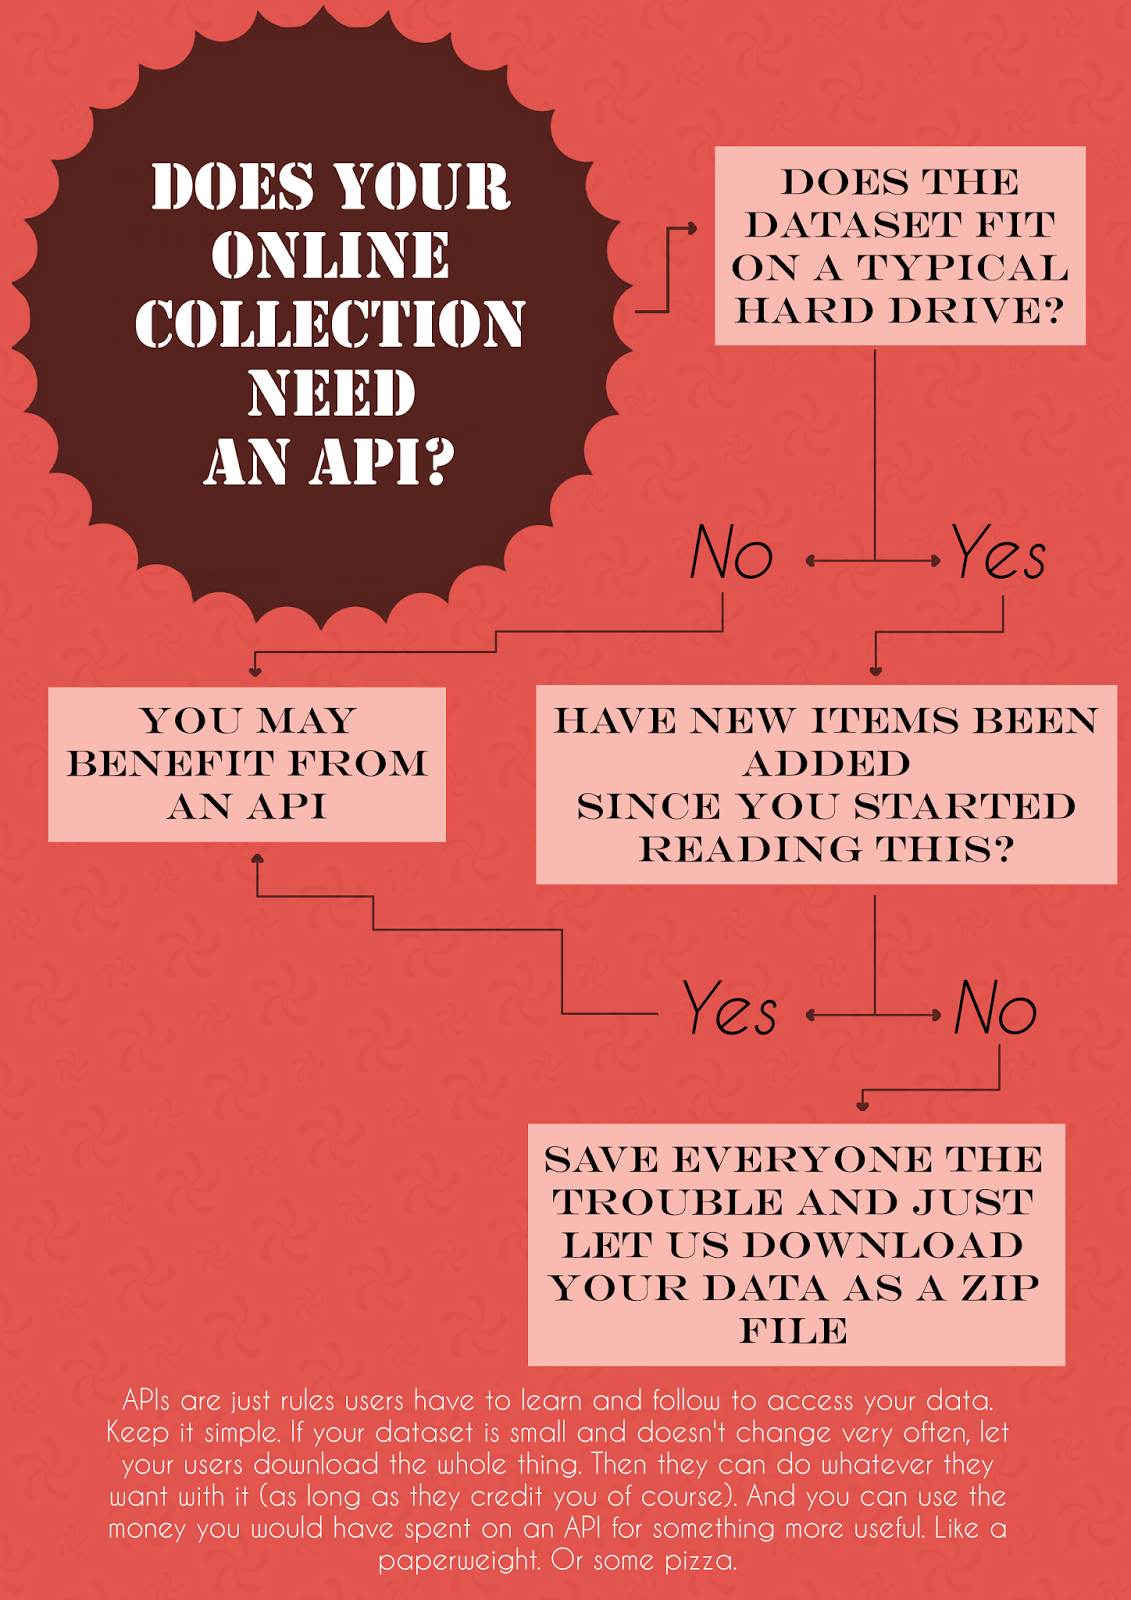 Does your online collection need an API?